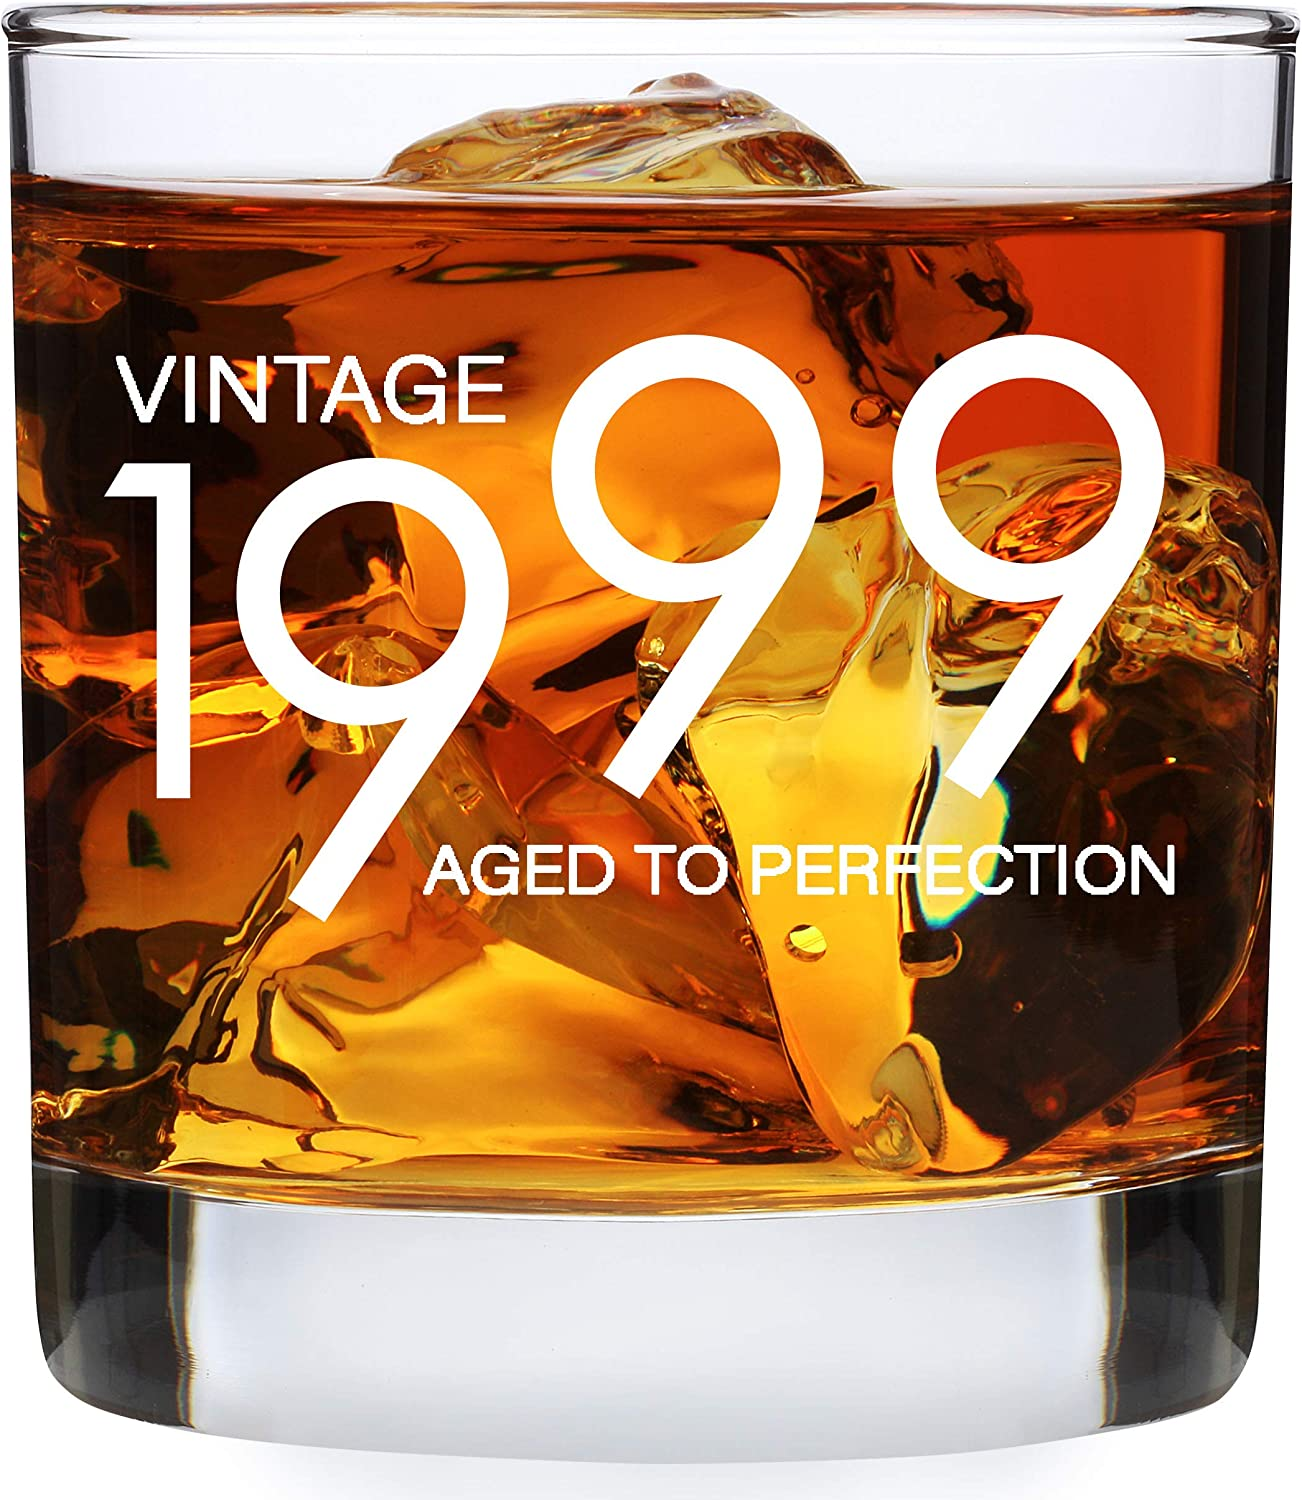 Amazon Com 1999 21st Birthday Gifts For Men Women 11 Oz Whiskey Bourbon Lowball Glass Funny Twenty First Vintage 21 Year Old Present Ideas For Him Her Dad Mom Husband Wife Whisky Glasses Party